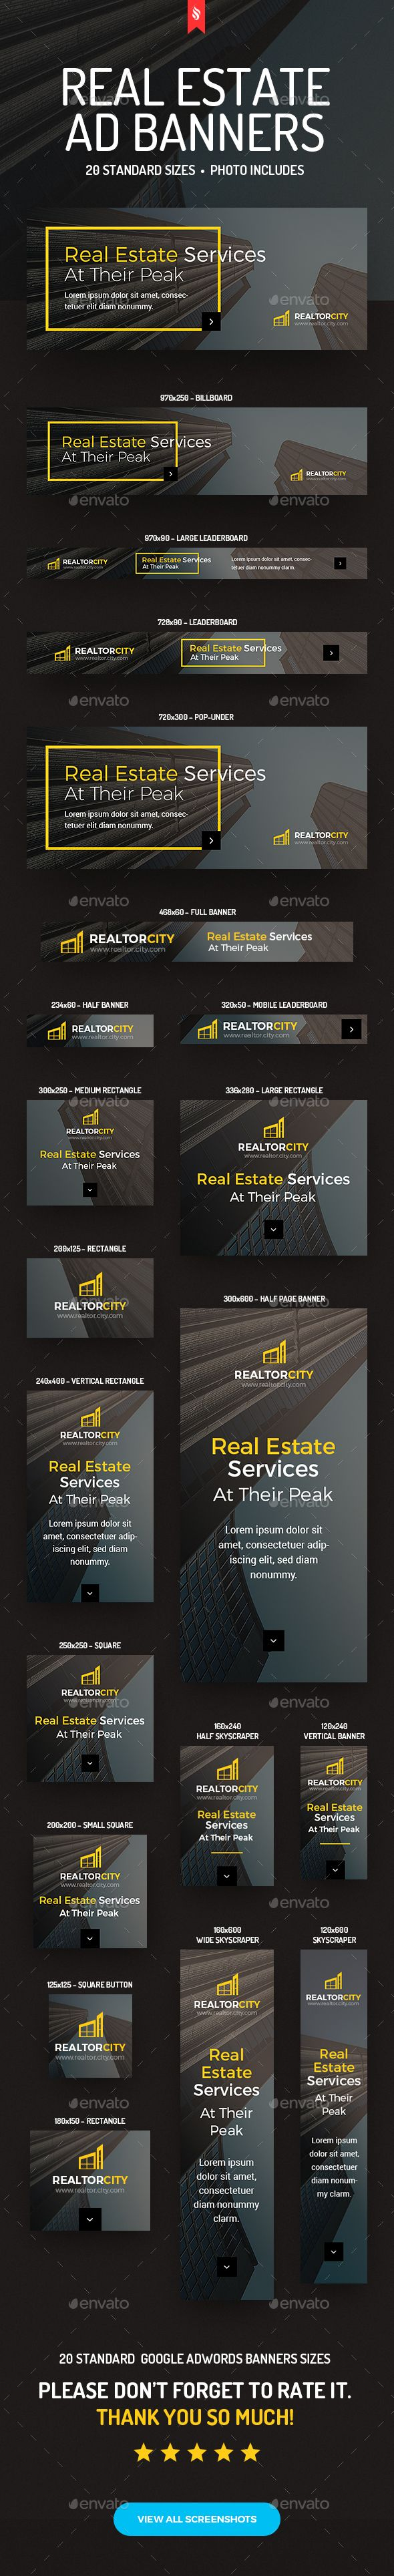 RealtorCity - Real Estate Ad Banners - Banners & Ads Web Elements